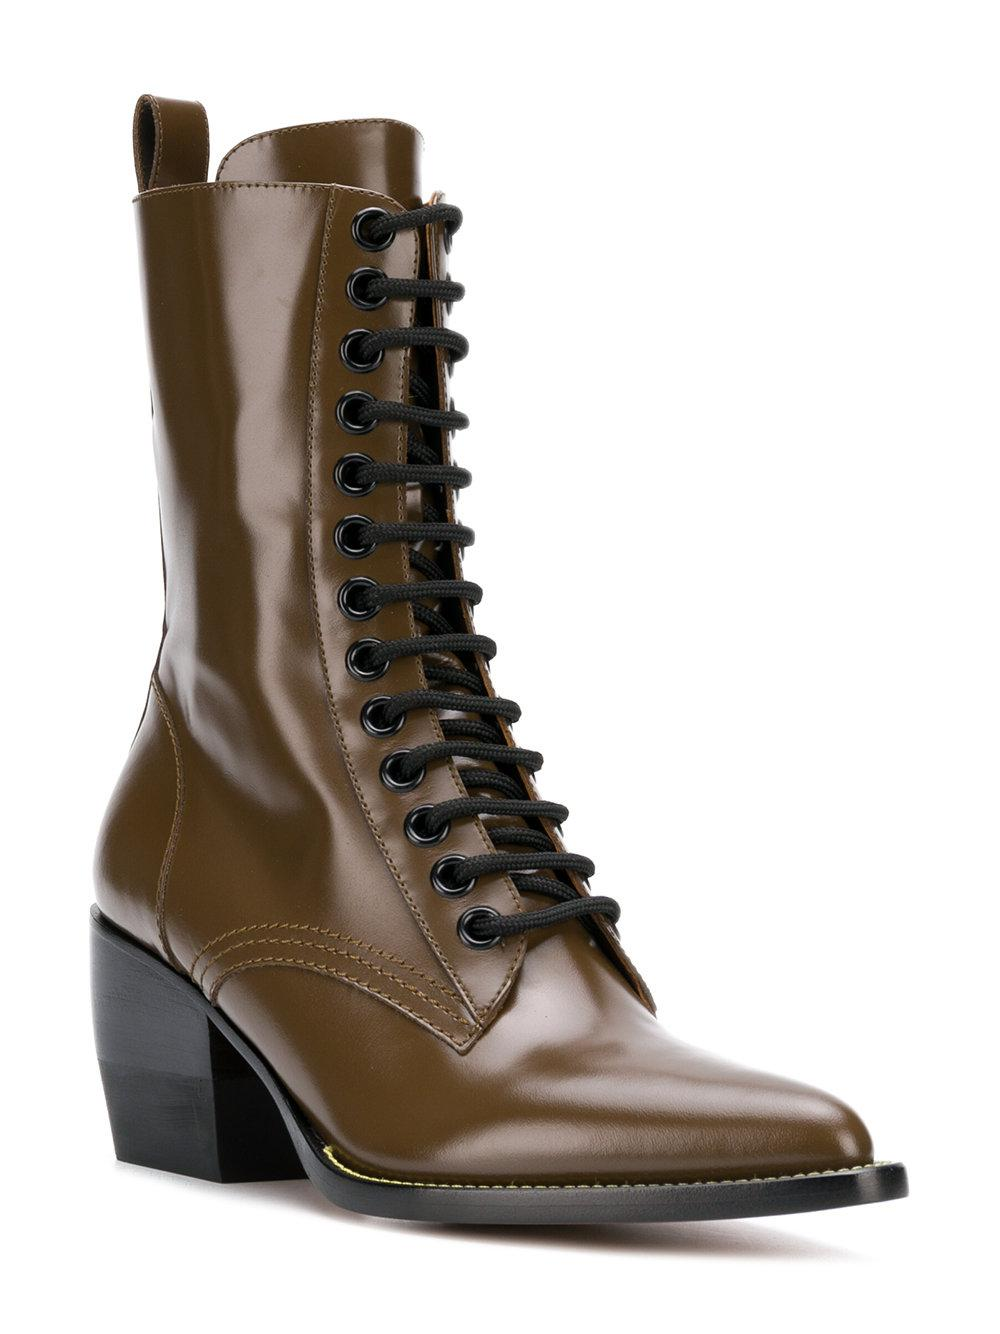 Chloé Leather Rylee Mid-calf Boots in Brown